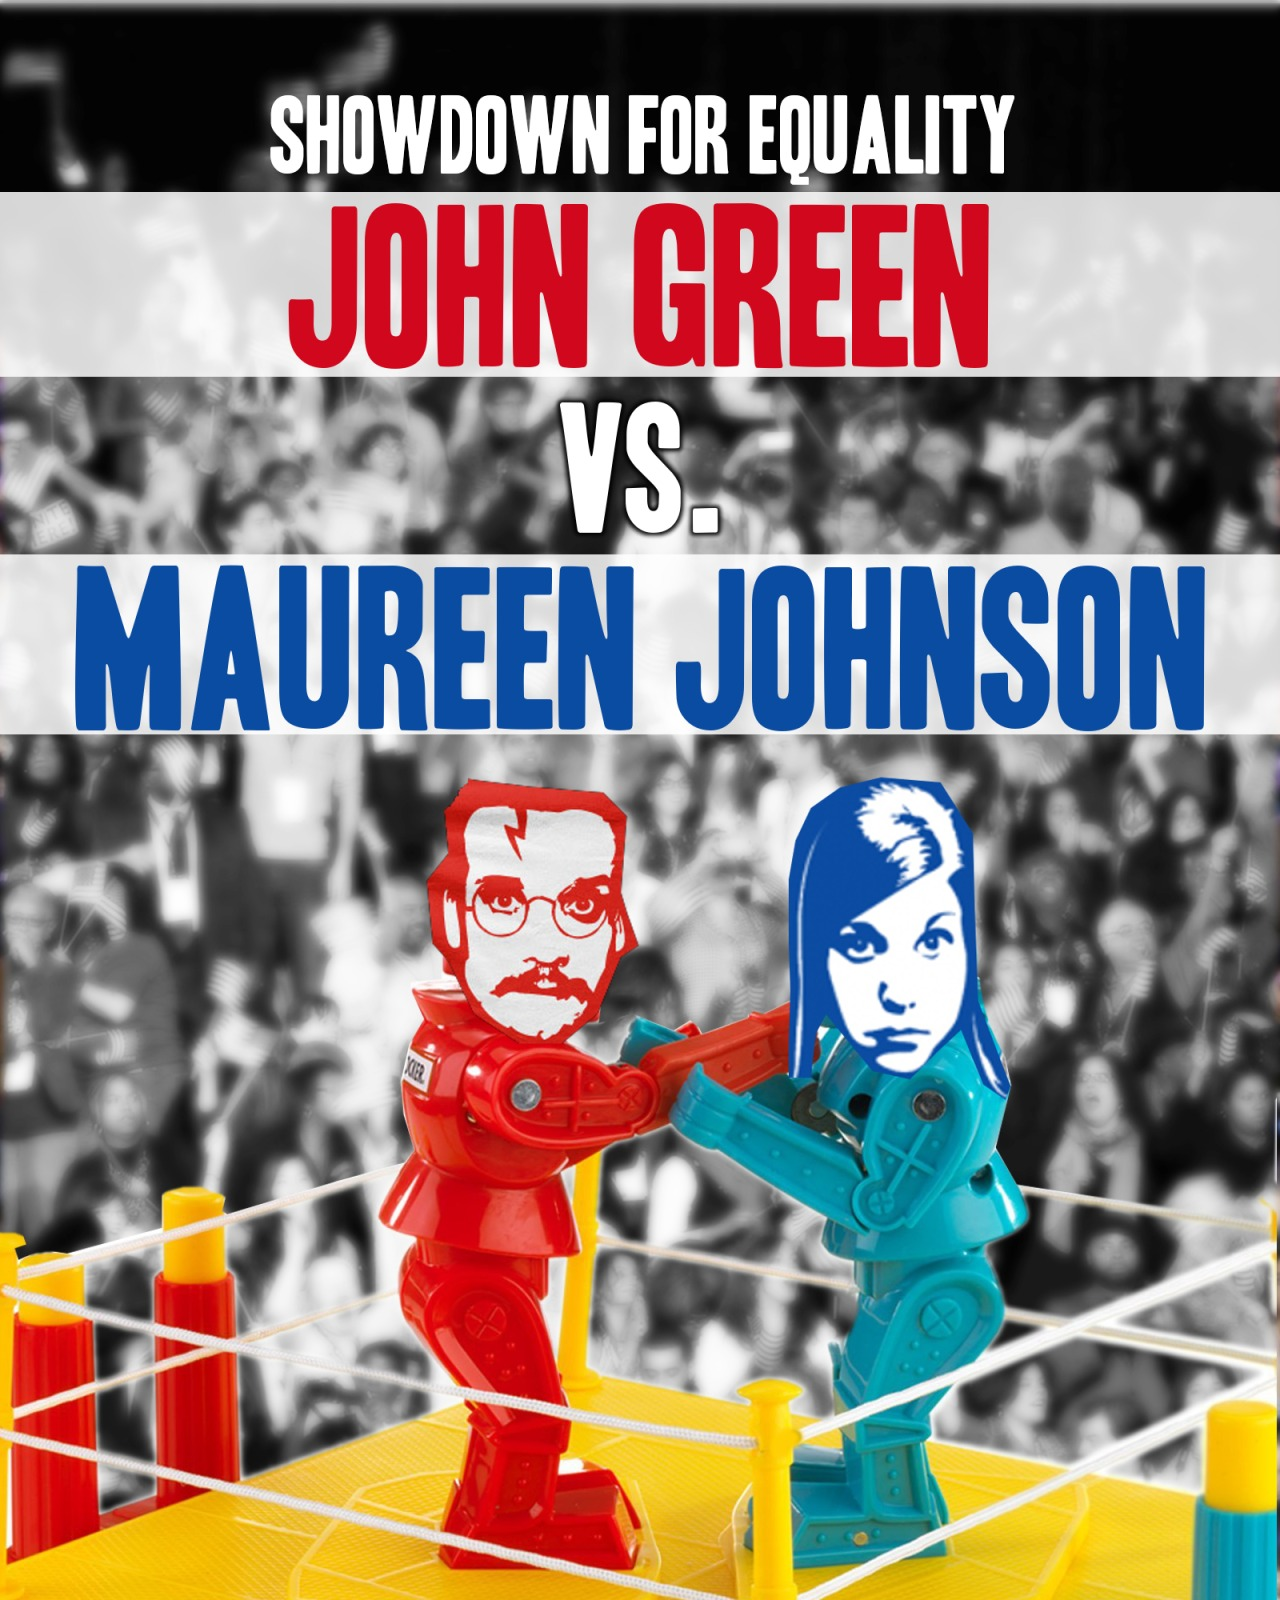 thehpalliance: Team John or Team Maureen?Donate to support your fave! Both John and Maureen have writing perks available for Equality FTW -an excerpt fromThe Price of Dawn and a fanfiction about John Green, respectively. You can claim either one to support your team or Switzerland it by going for the awesome nerdfighter bundle! What's it gonna be, Nerdfighteria? Donate here and spread the word! My John Green fanfiction will be unlike anything you have ever read, is all. John's is good too. CHOOSE. Or, DON'T CHOOSE AND GET BOTH.